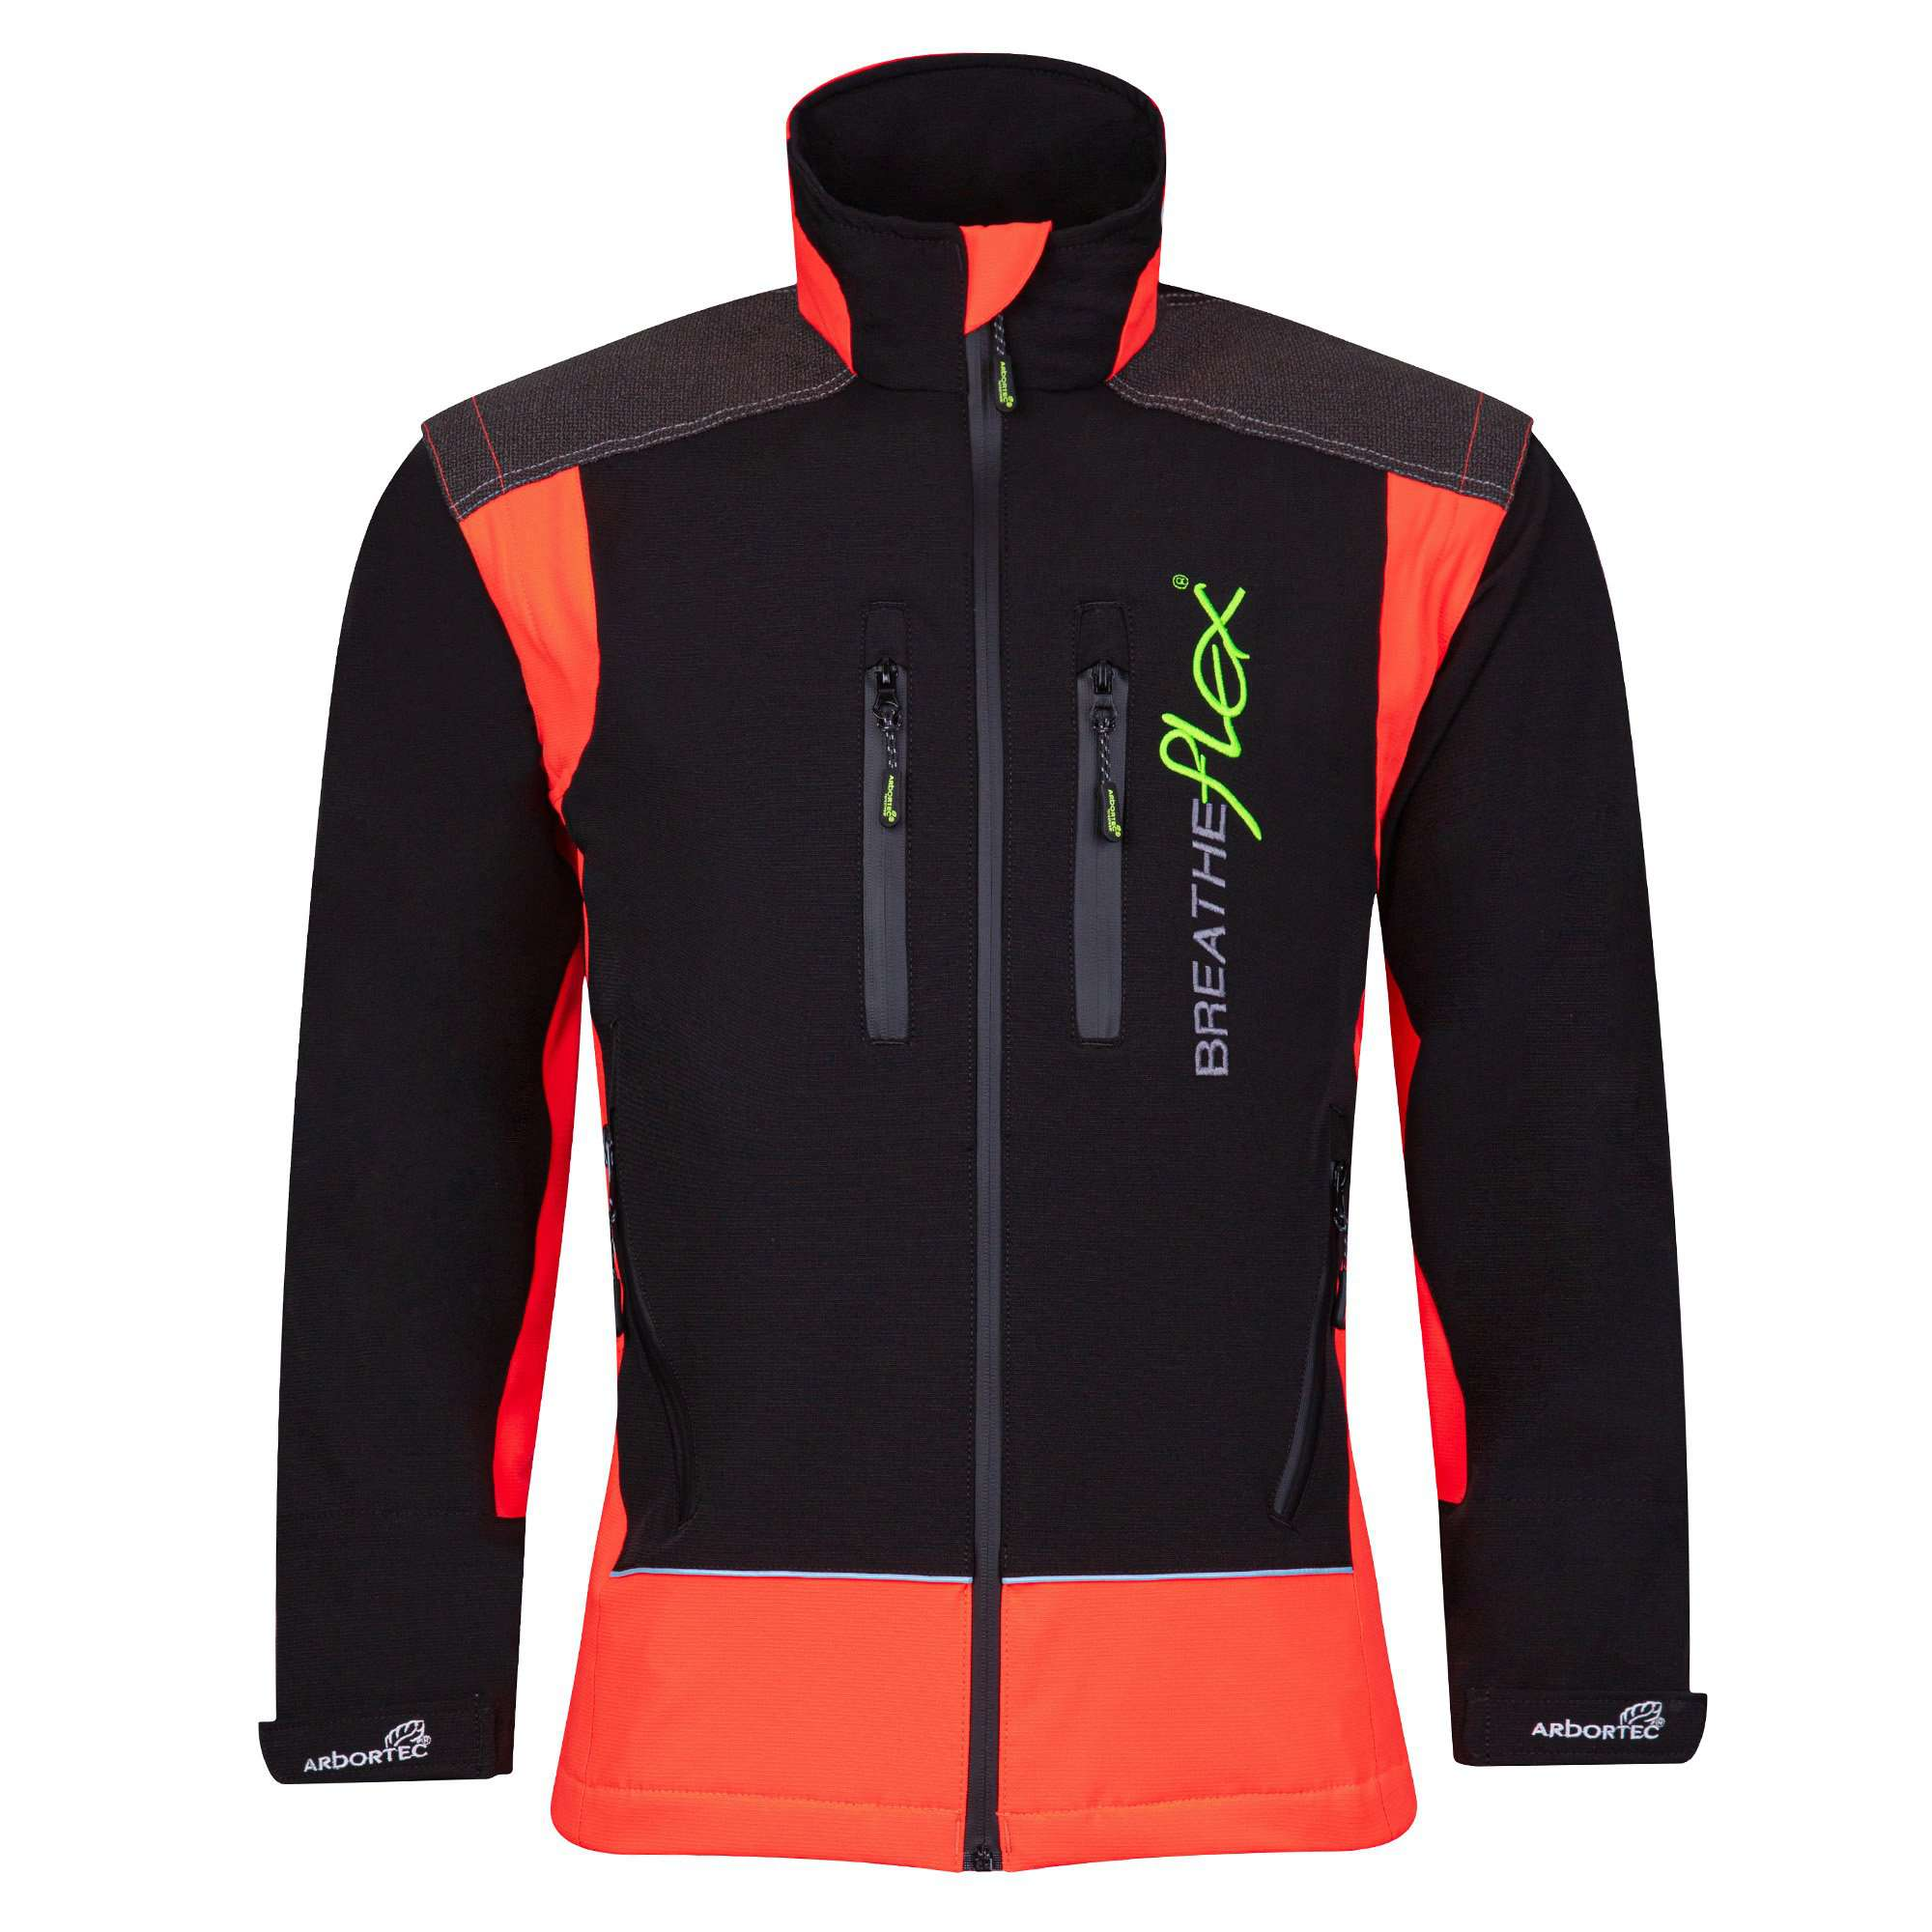 AT4000 Breatheflex Performance Work Jacket  - Orange